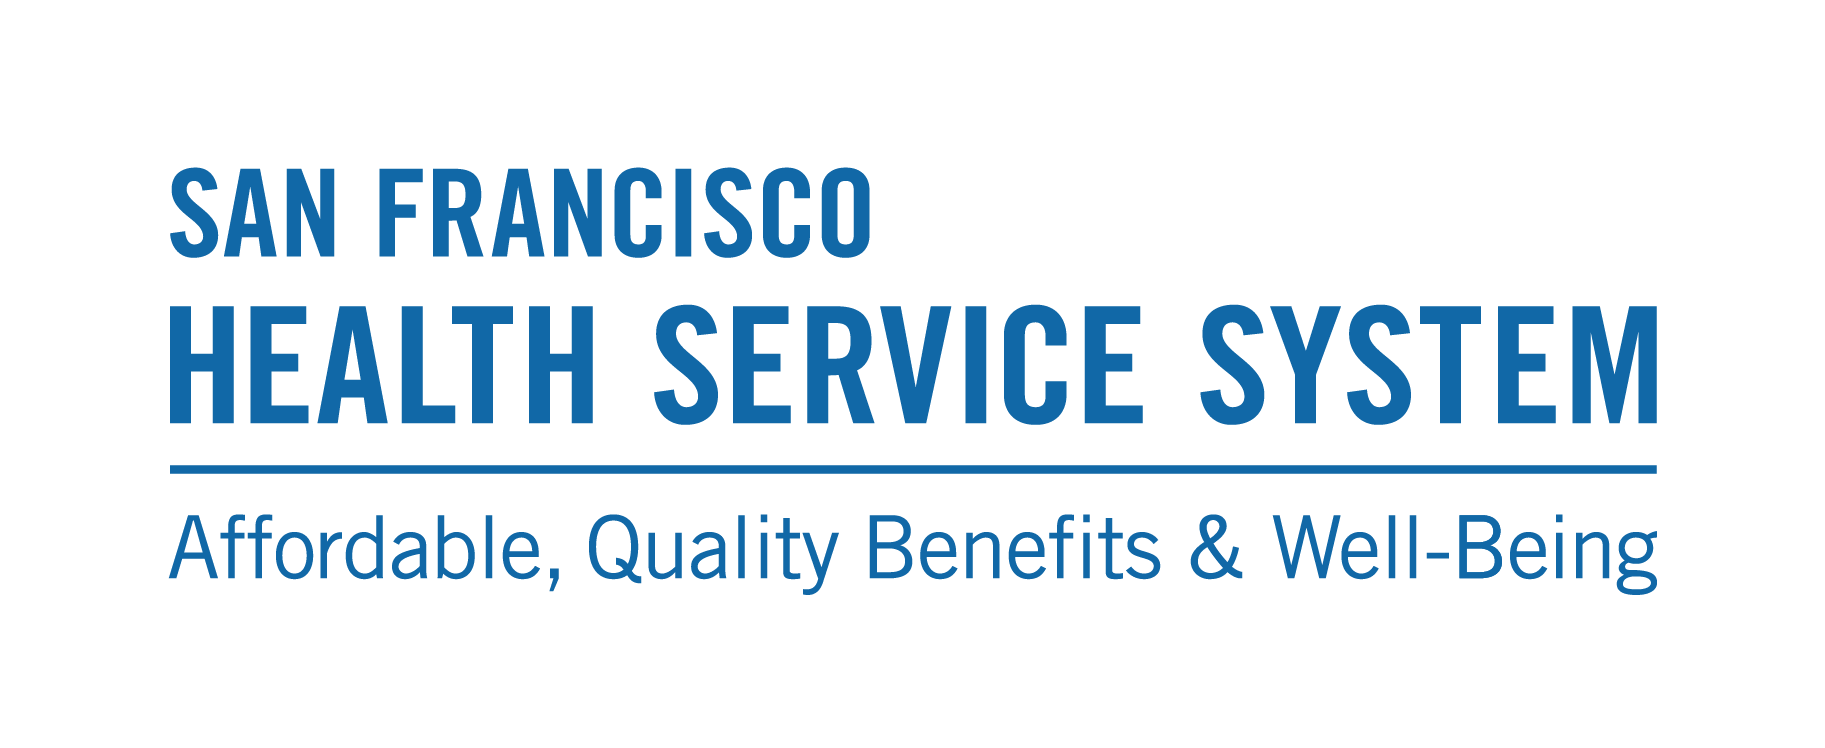 San-Francisco-Health-Service-System